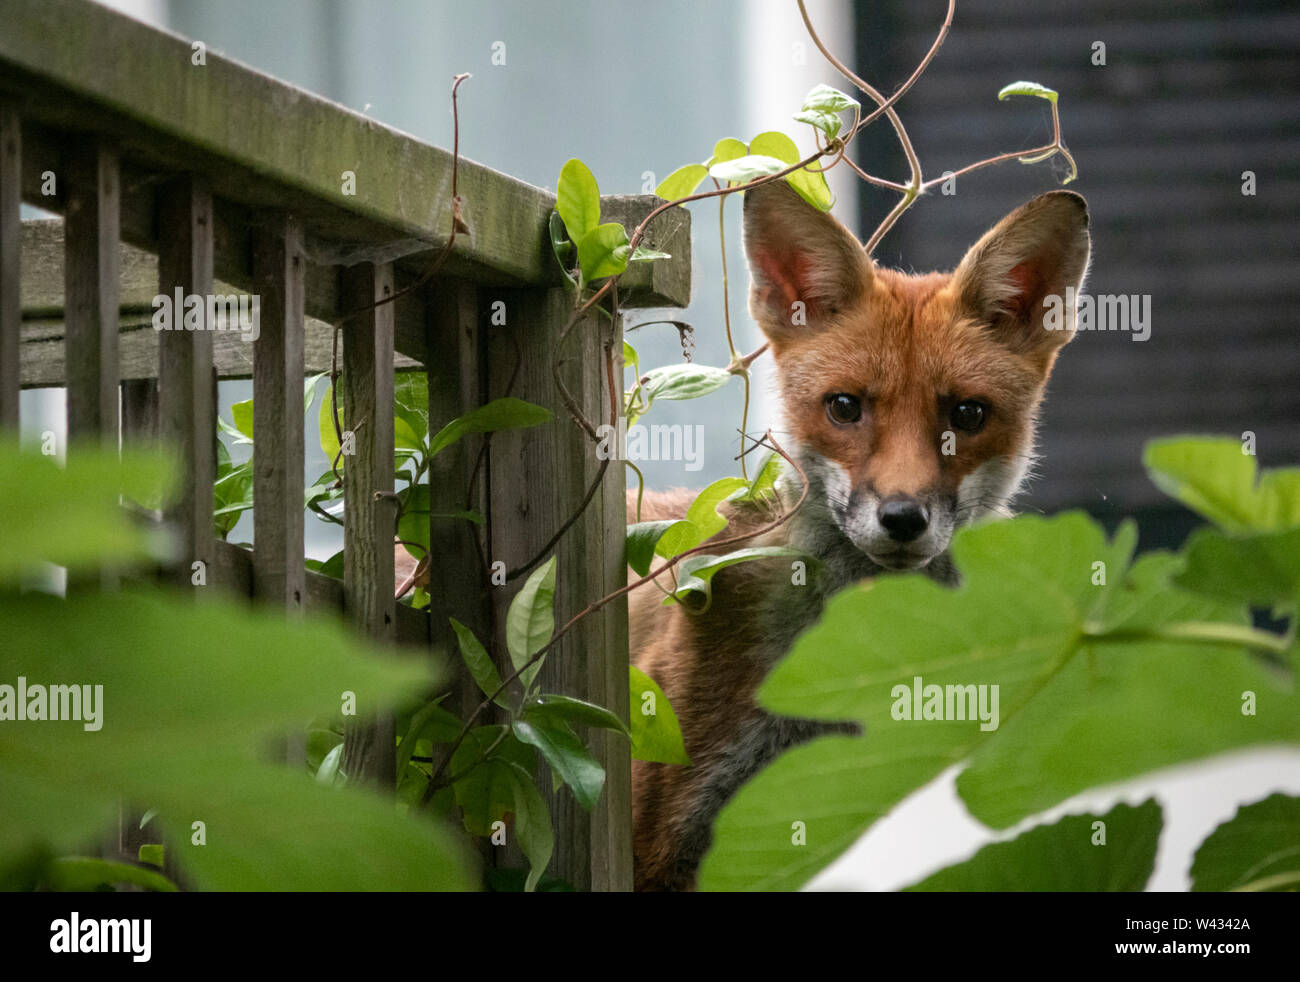 Urban fox: a wild European red fox youngster pokes its head out from behind a fig tree in a private garden on Brighton seafront, England, UK Stock Photo